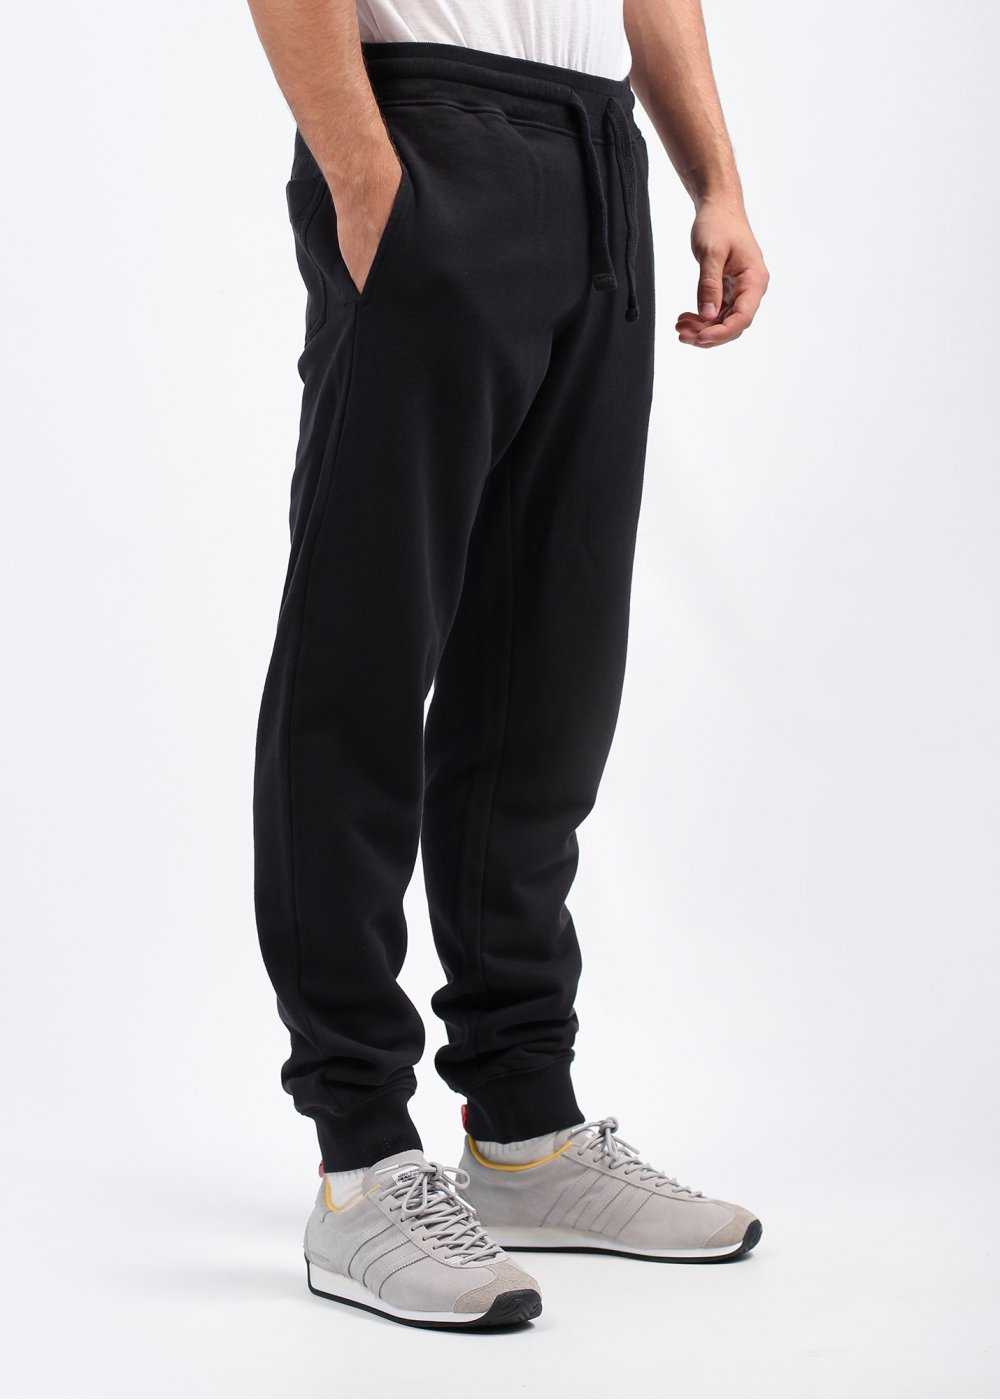 Fleece jogger pants in marled colors with elastic waist and matching Ambiance Women's Juniors Soft Jogger Pants. by Ambiance. $ - $ $ 10 $ 24 99 Prime. FREE Shipping on eligible orders. Some sizes/colors are Prime eligible. out of 5 stars Champion Women's Jogger. by Champion.